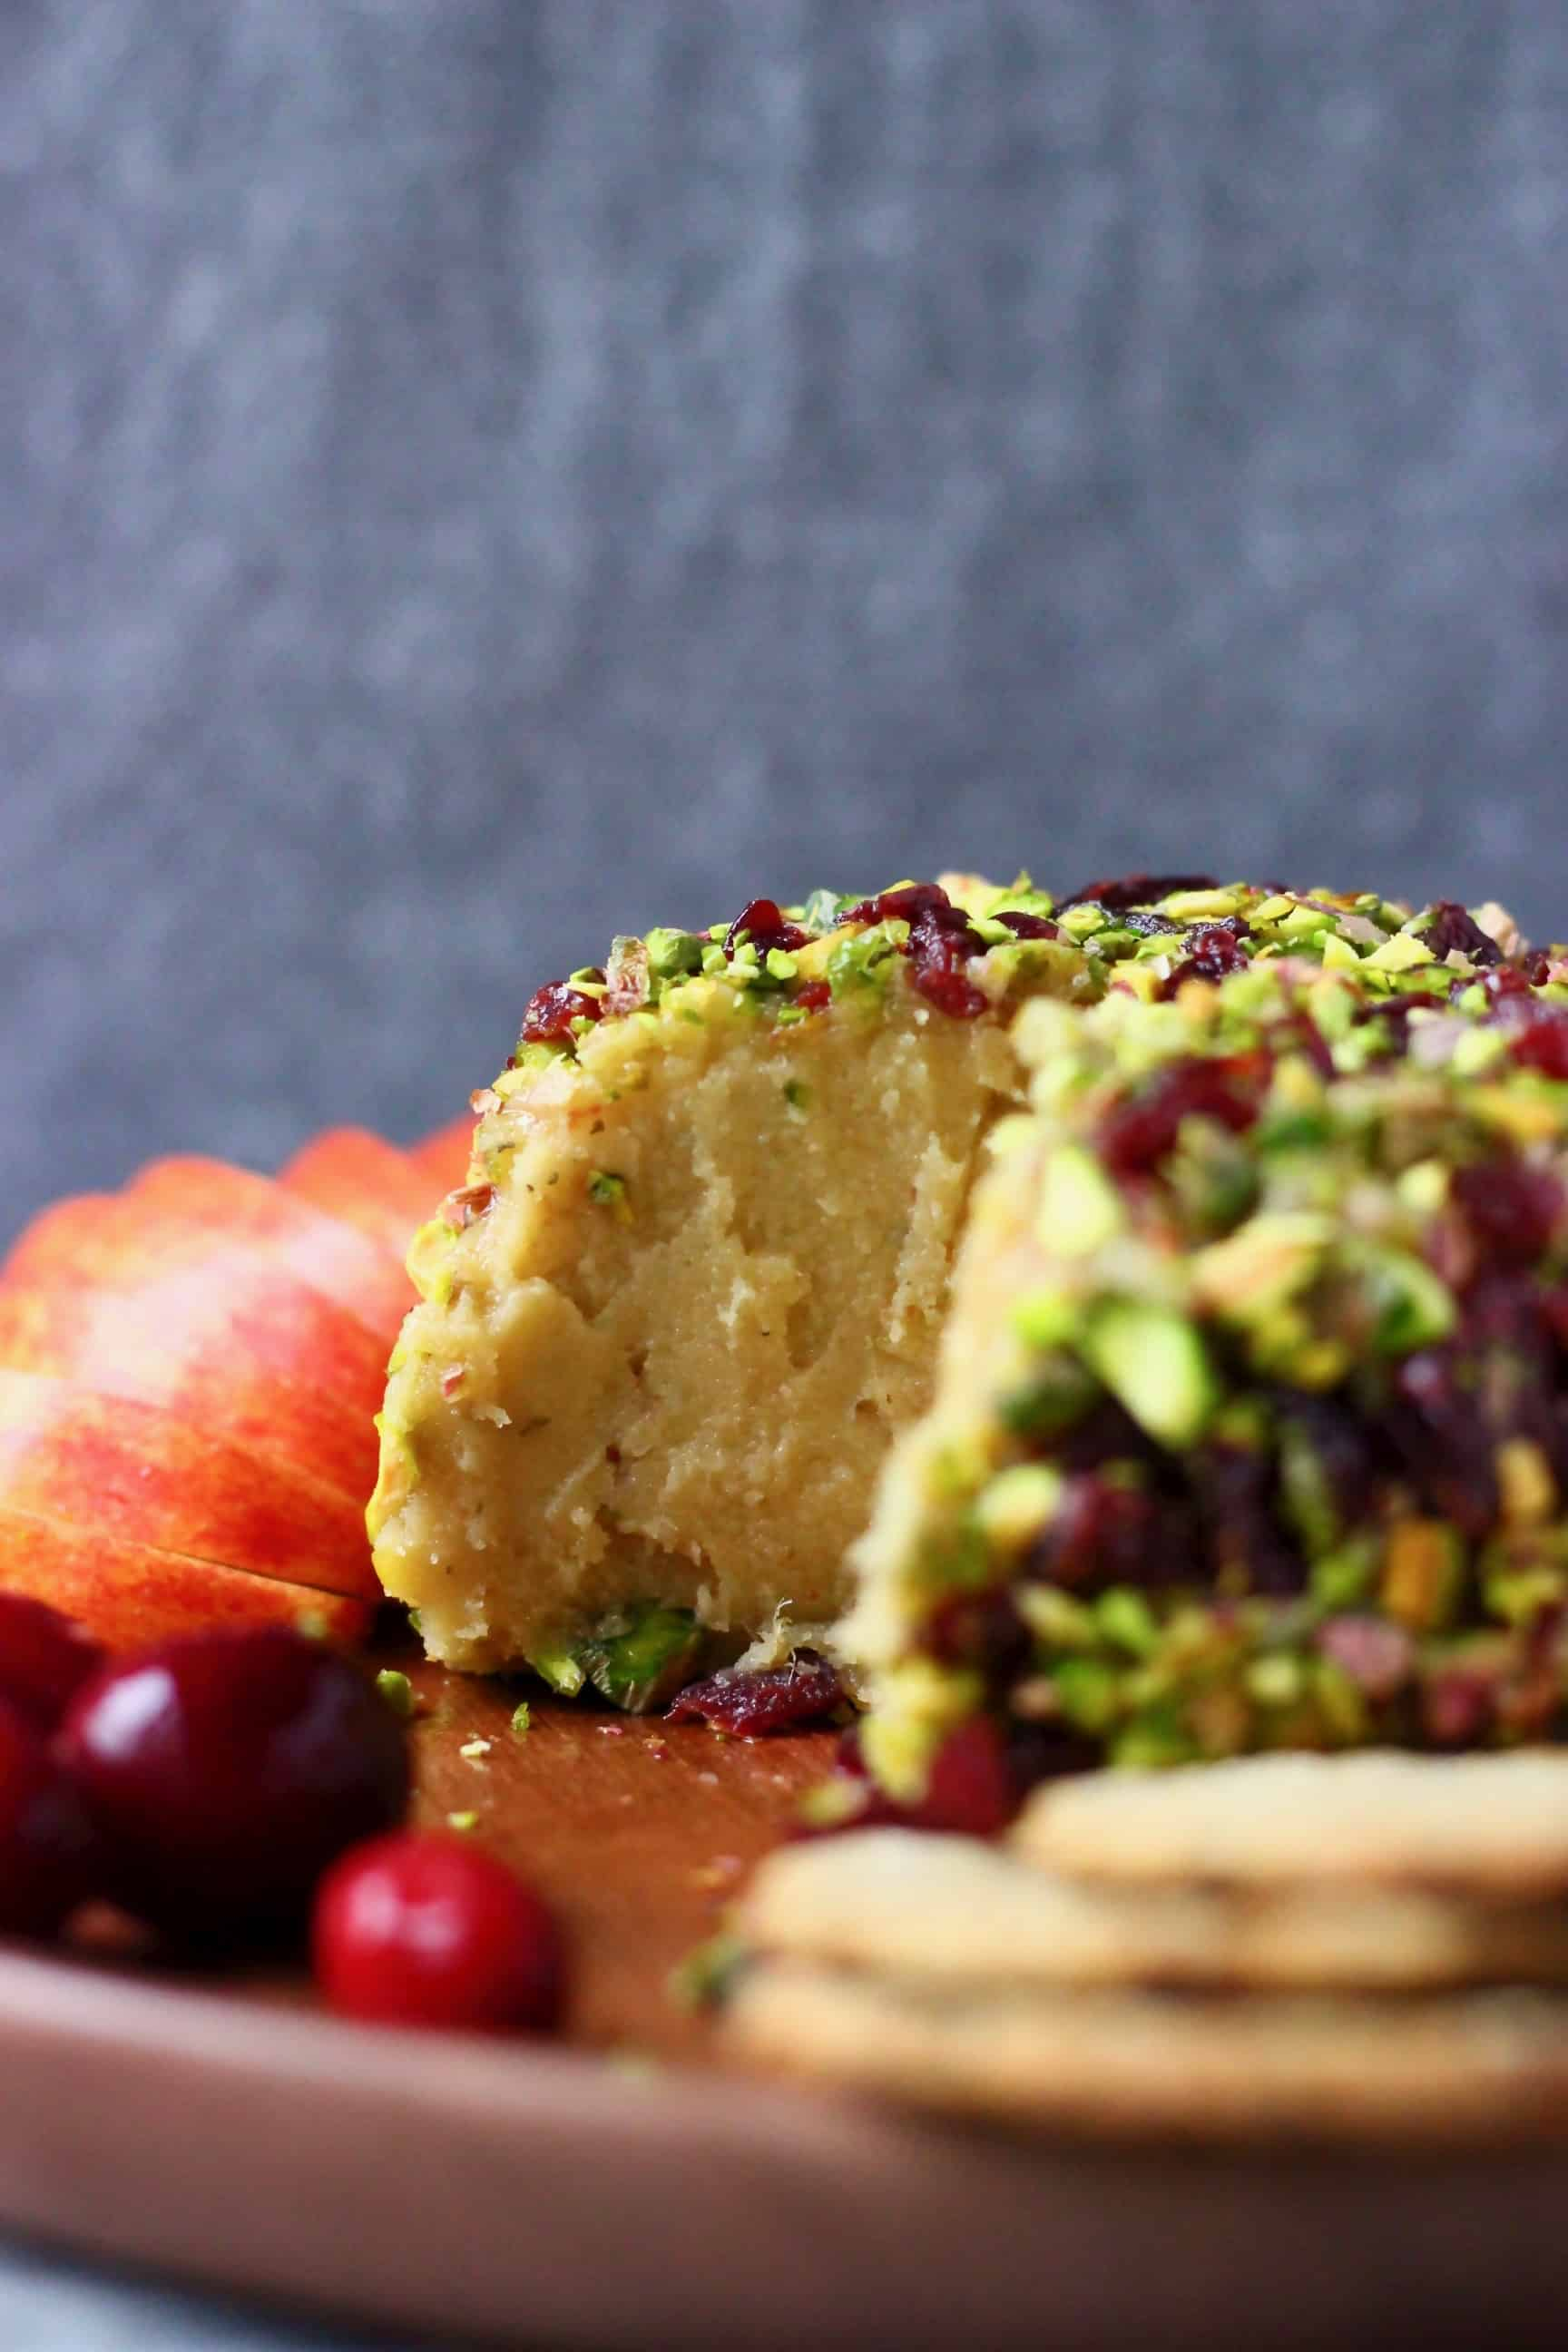 A sliced ball of cashew cheese covered in chopped pistachios and dried cranberries on a wooden plate against a grey background